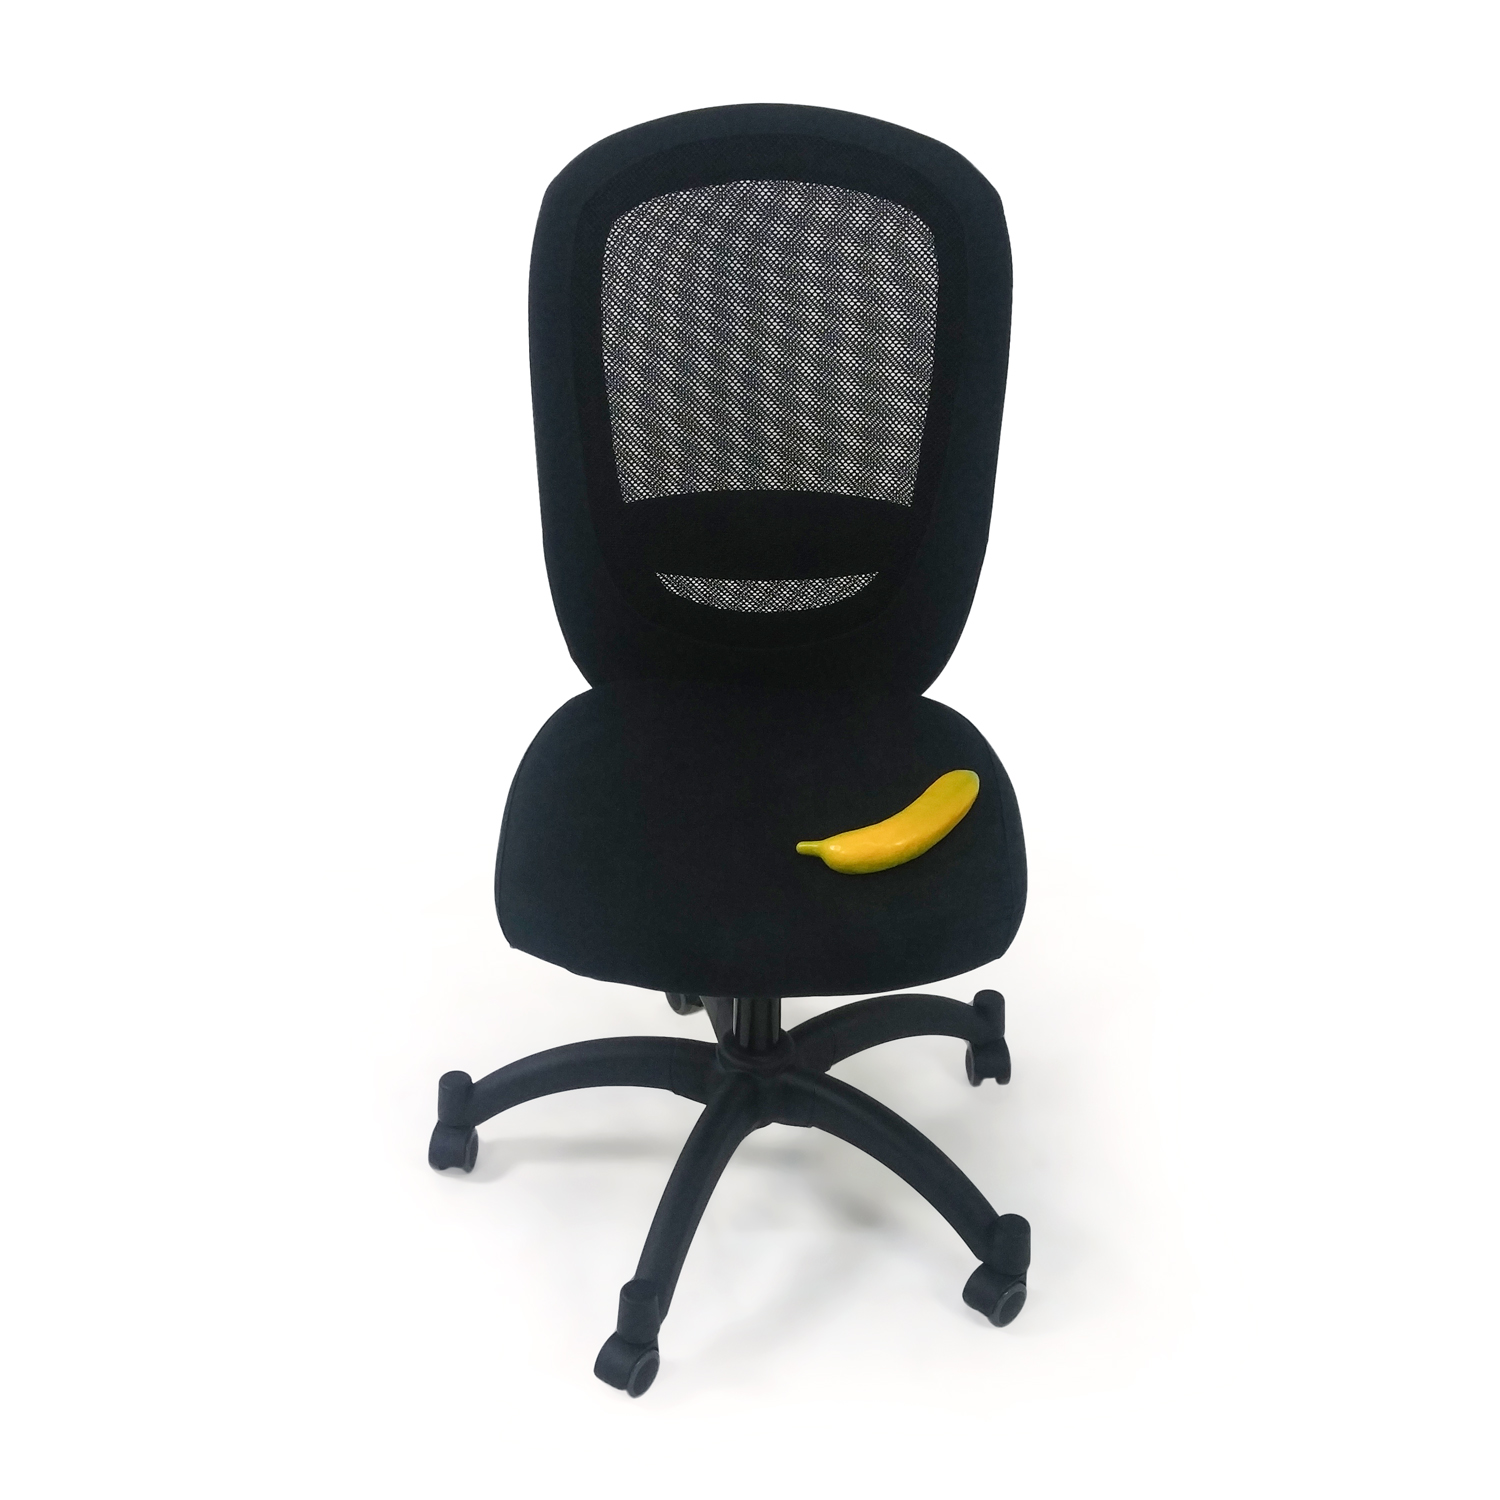 buy Black Swivel Chair IKEA Chairs